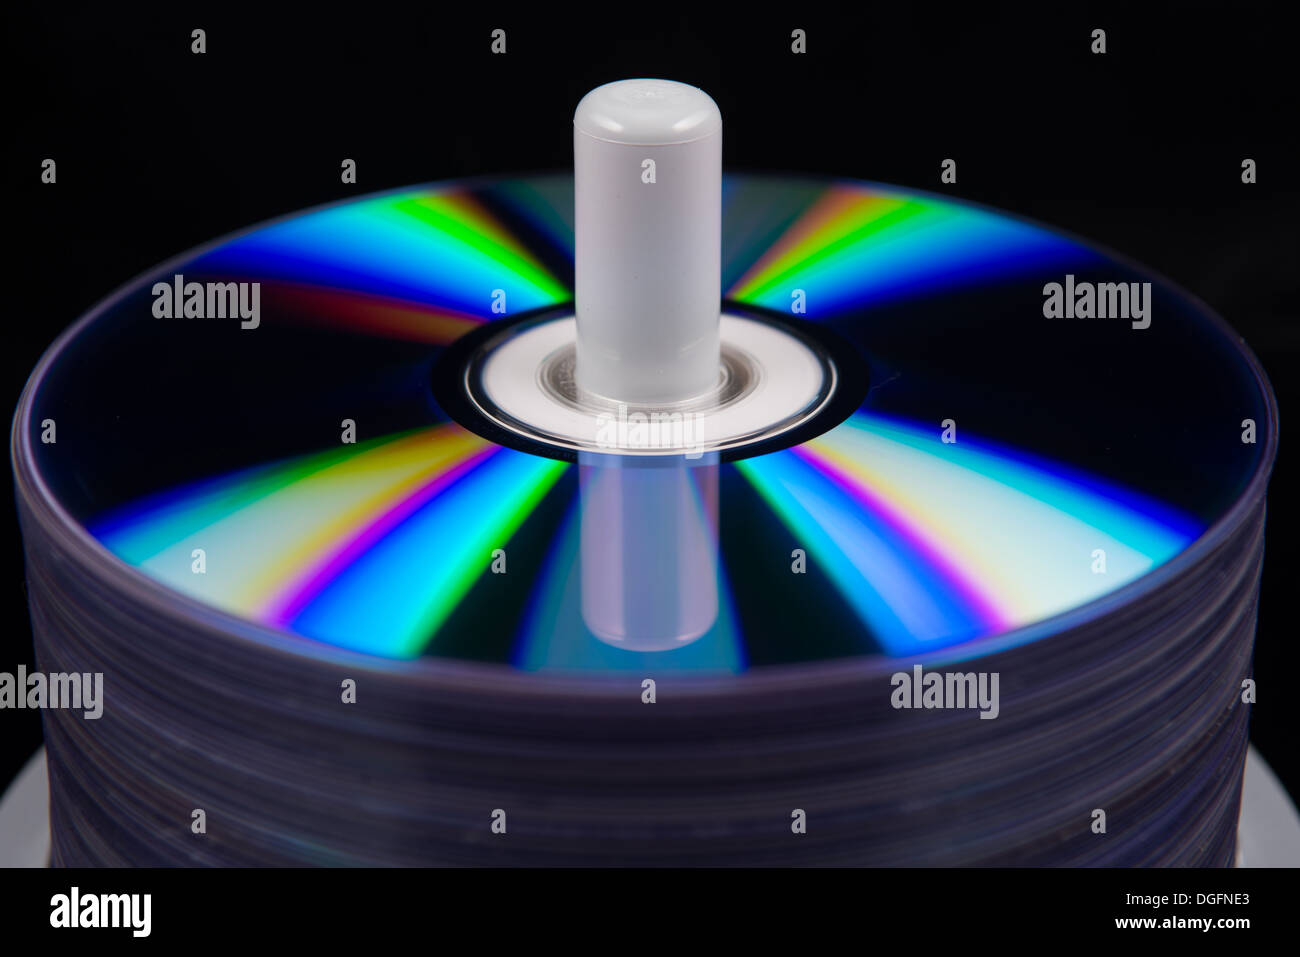 stack of dvd's, cd's close up - Stock Image